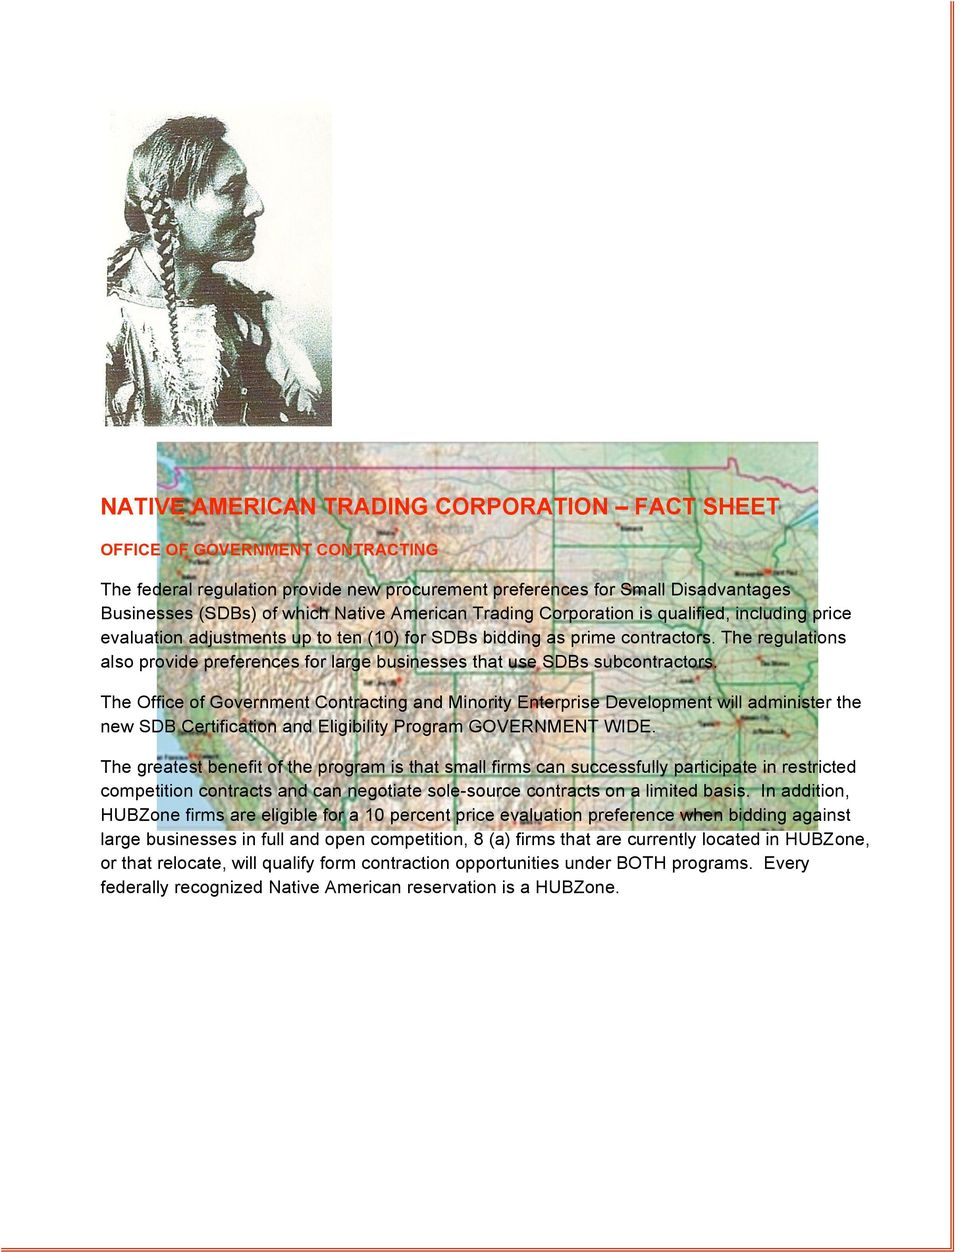 Native American Trading Corporation Business Incentives